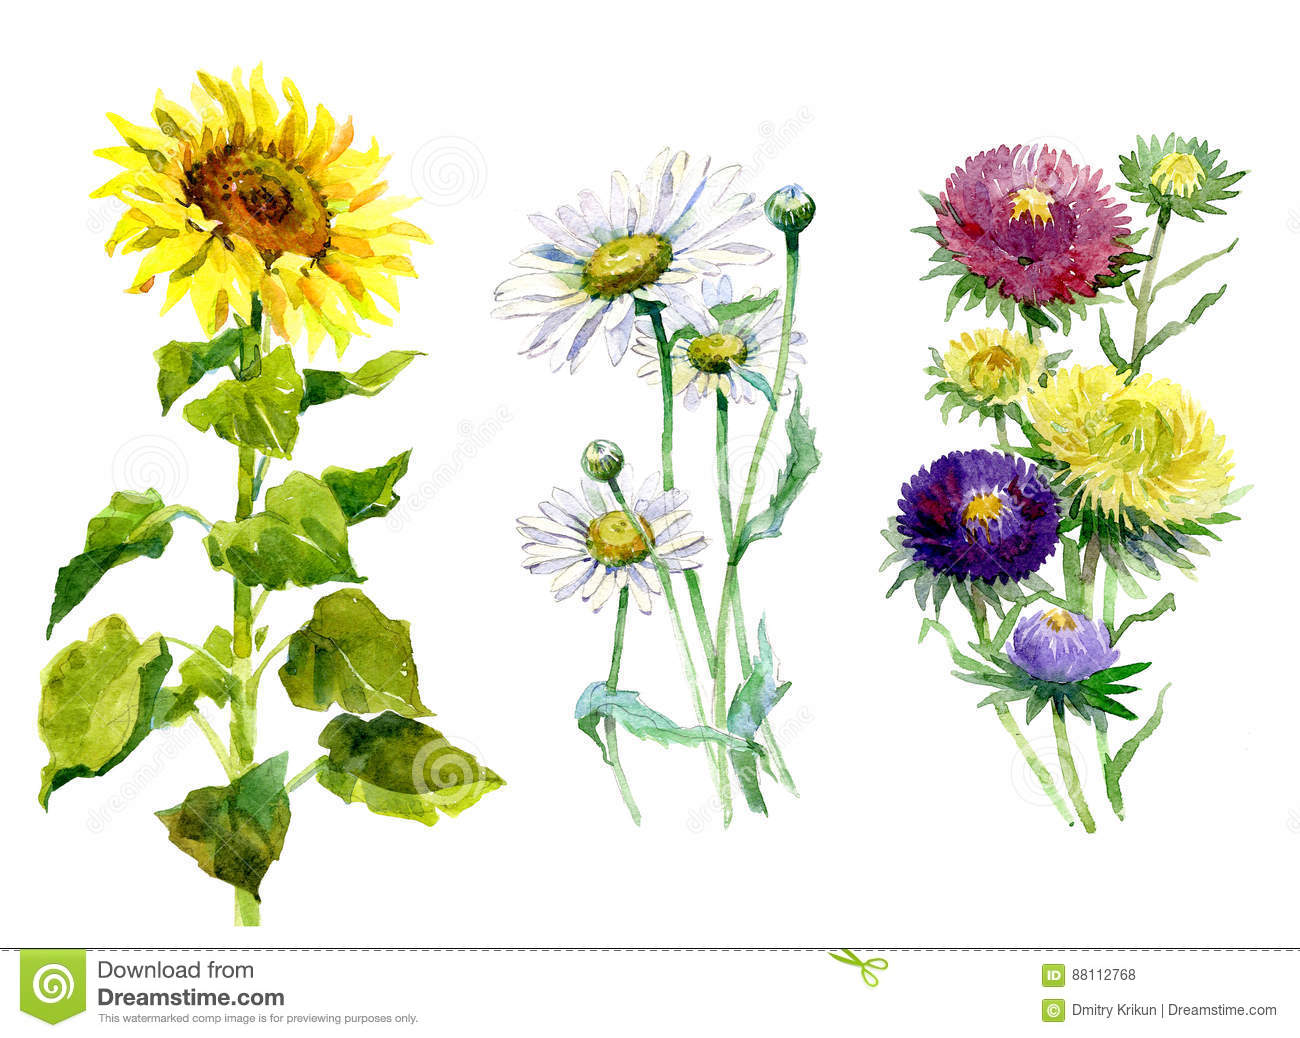 Watercolor aster, chrysanthemum, sunflower, chamomile bouquet